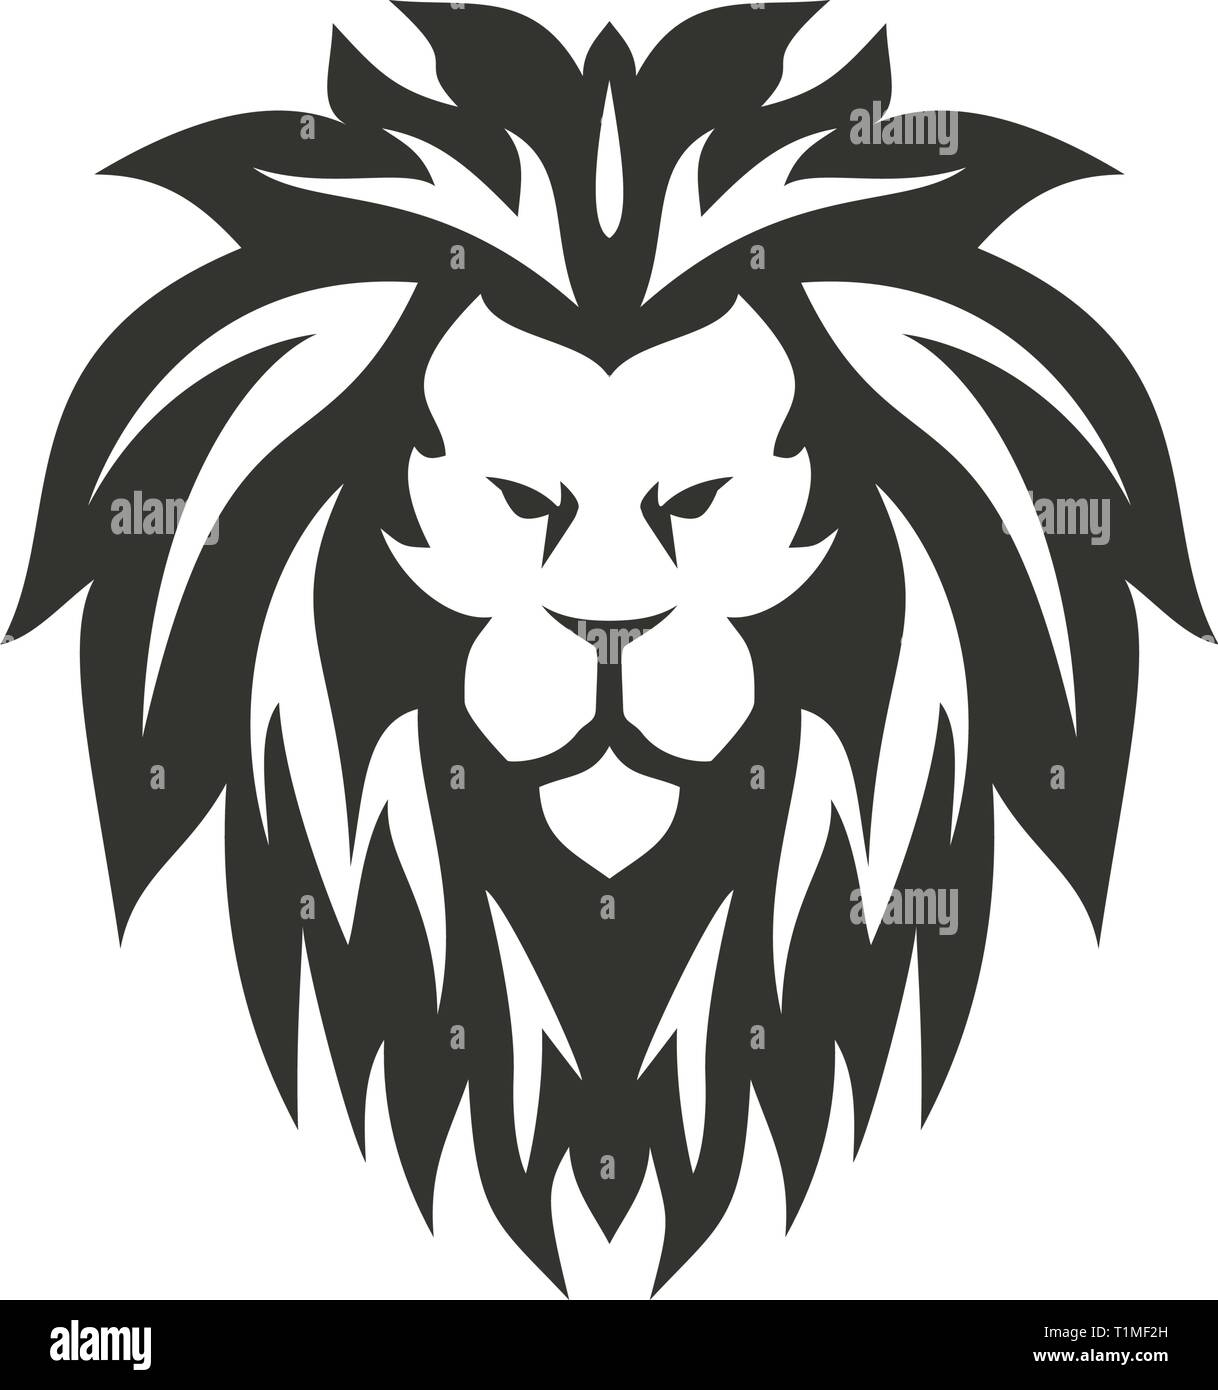 Lion symbol. Isolated on white background. - Stock Vector